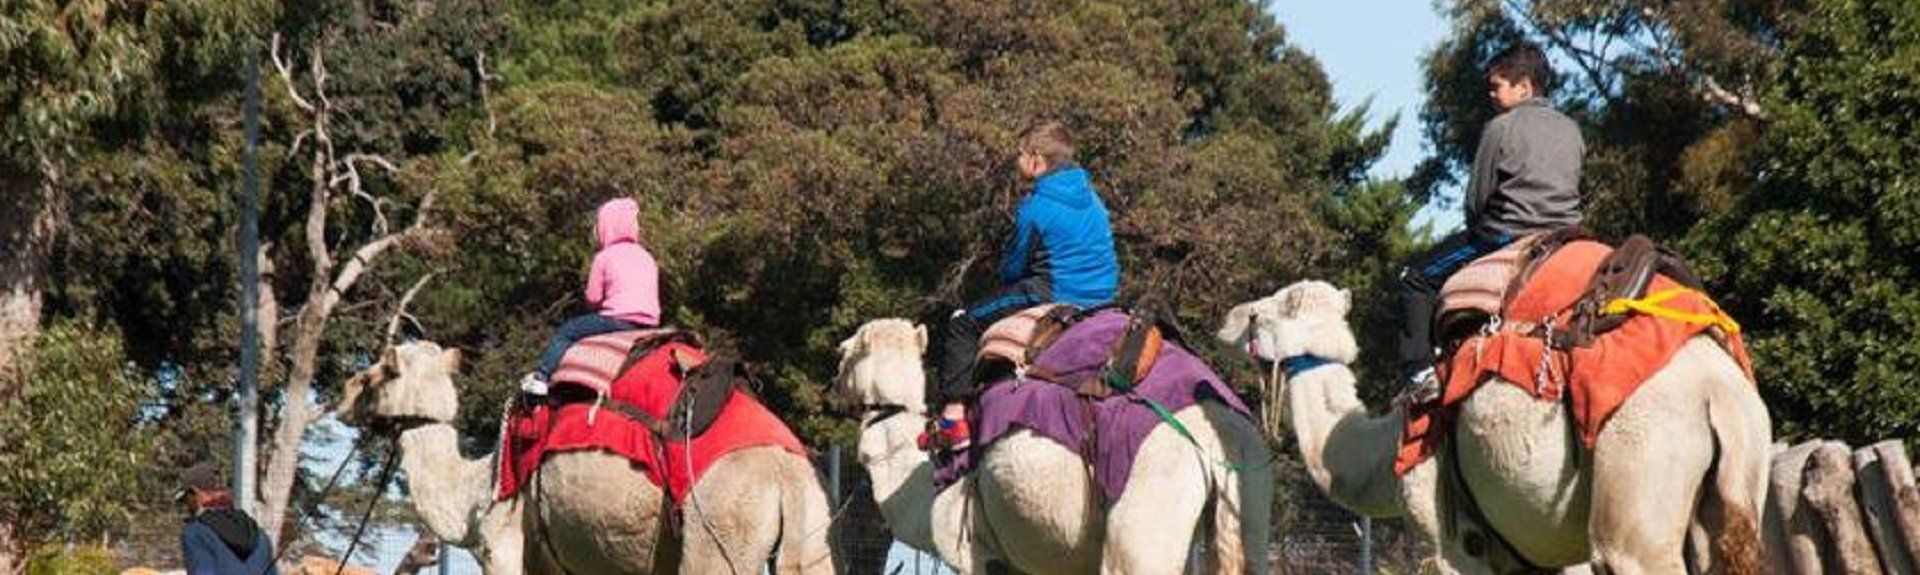 Imhoff Farm | Cape Town | Things to do With Kids